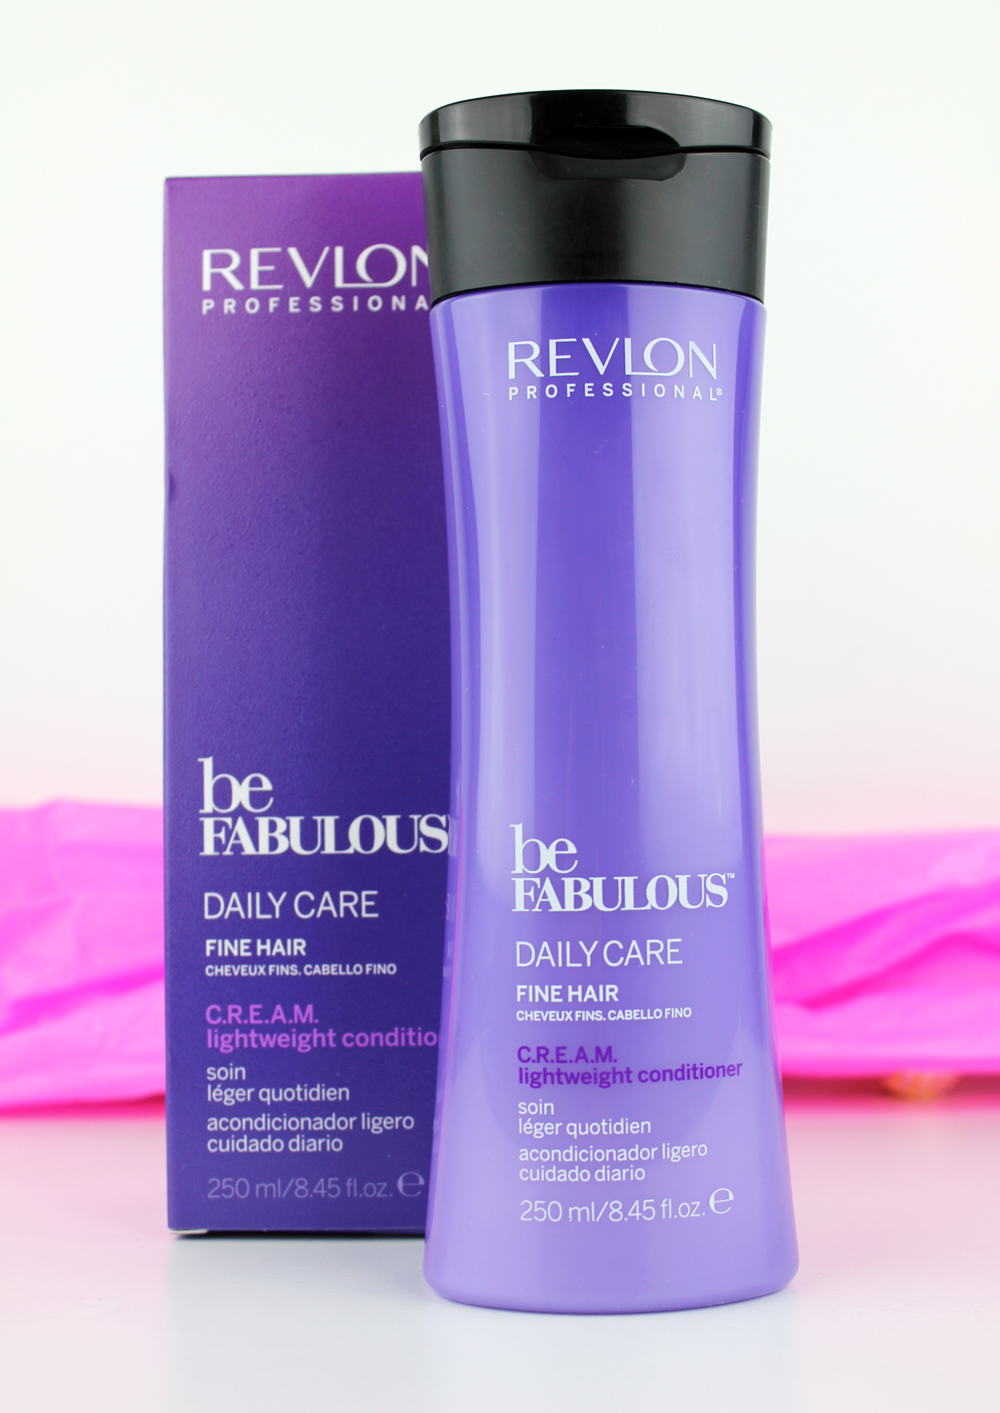 Revlon be fabulous Daily Care Fine Hair Lightweight Conditioner